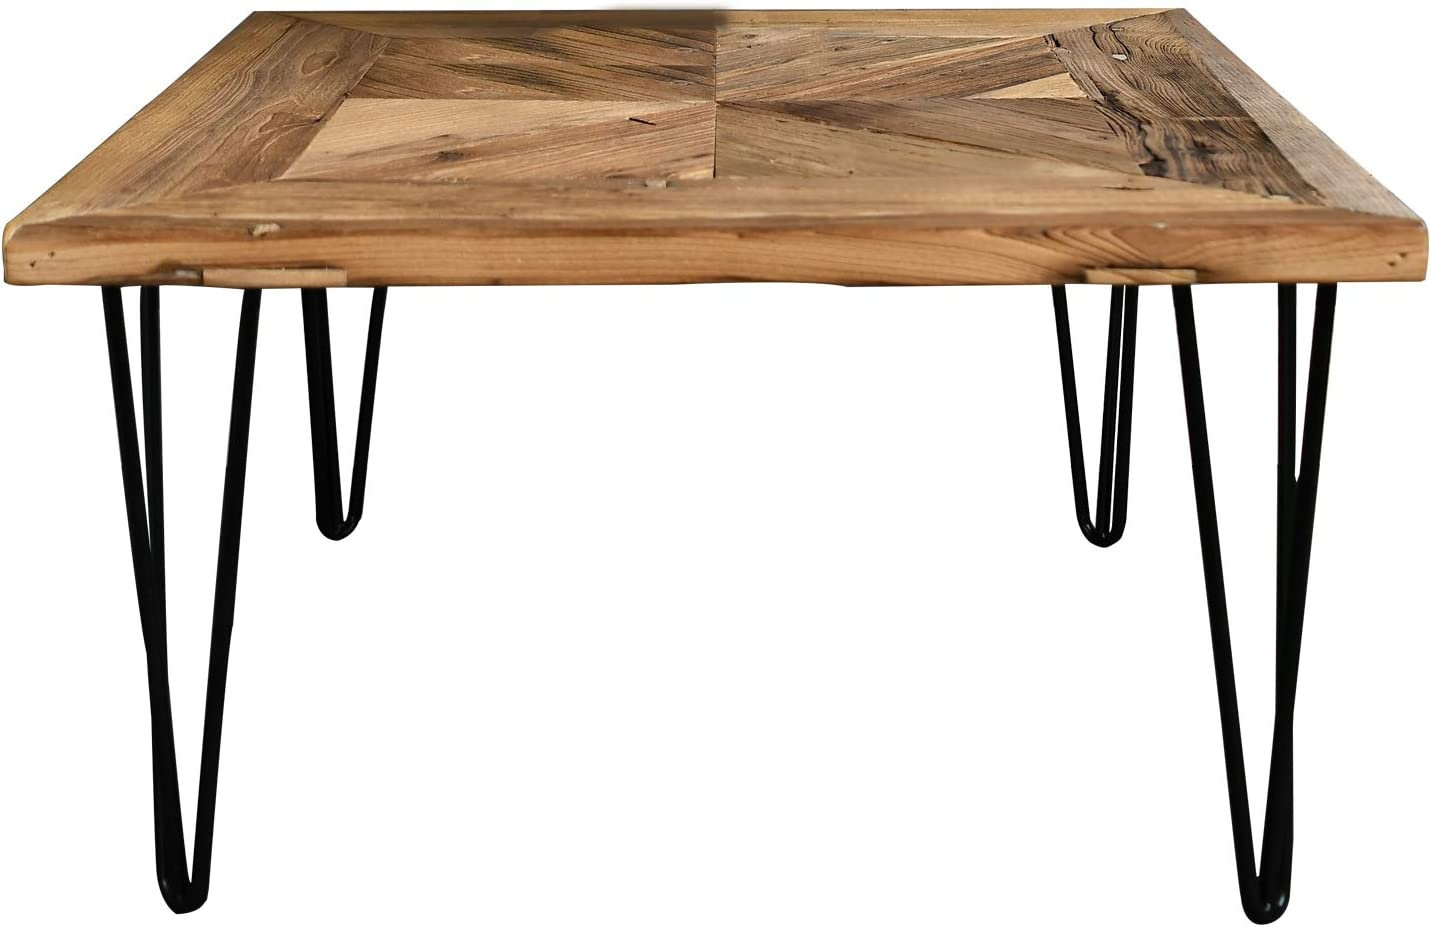 WELLAND Square Old Elm Coffee Table with Metal Stand,Diamond Shape Pattern: Kitchen & Dining